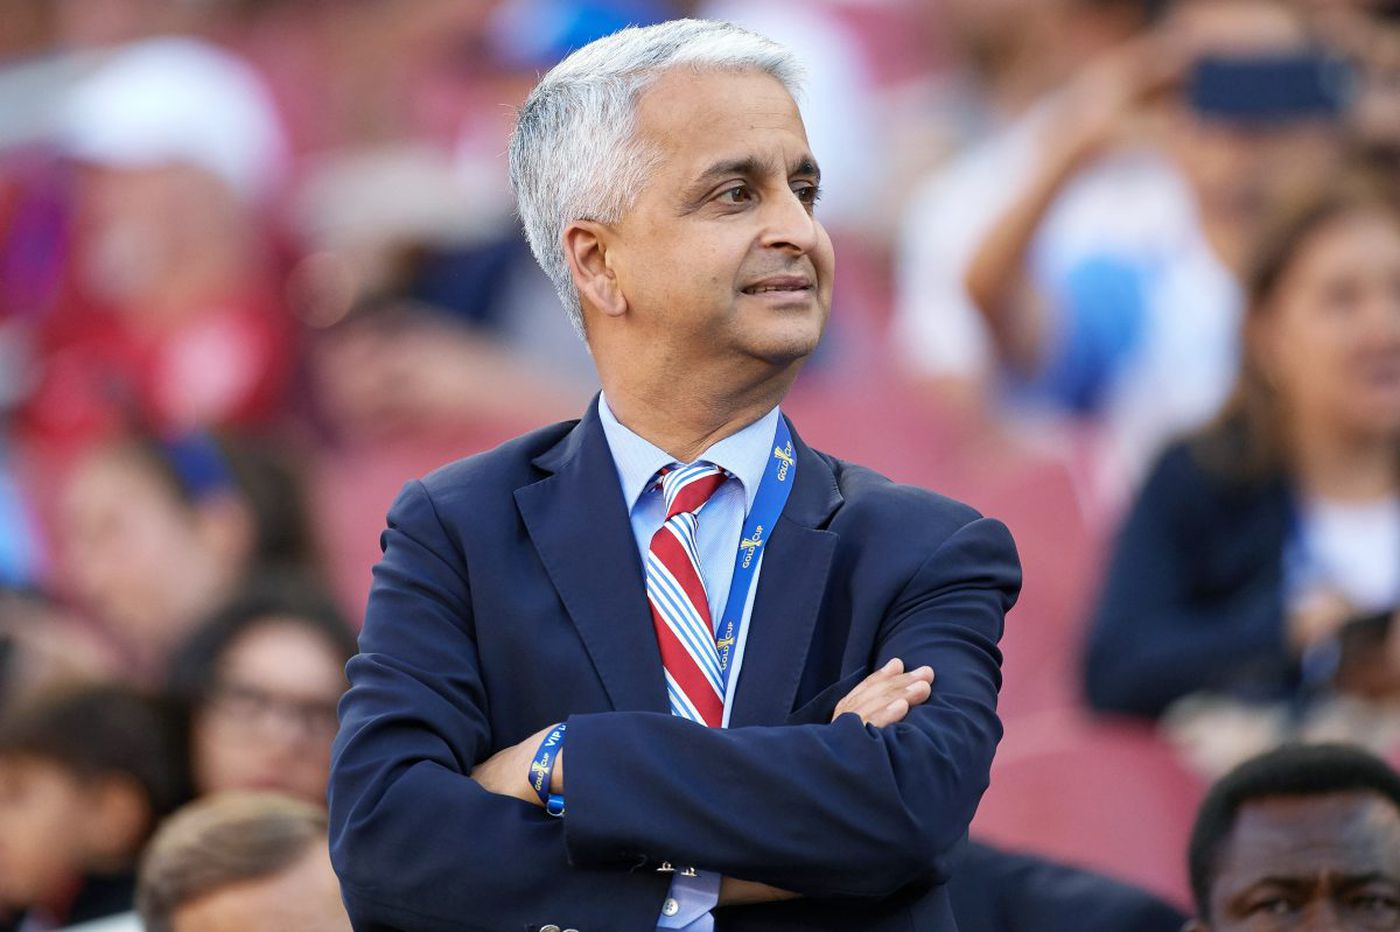 U.S. Soccer might not hire men's national team coach until after 2018 World Cup